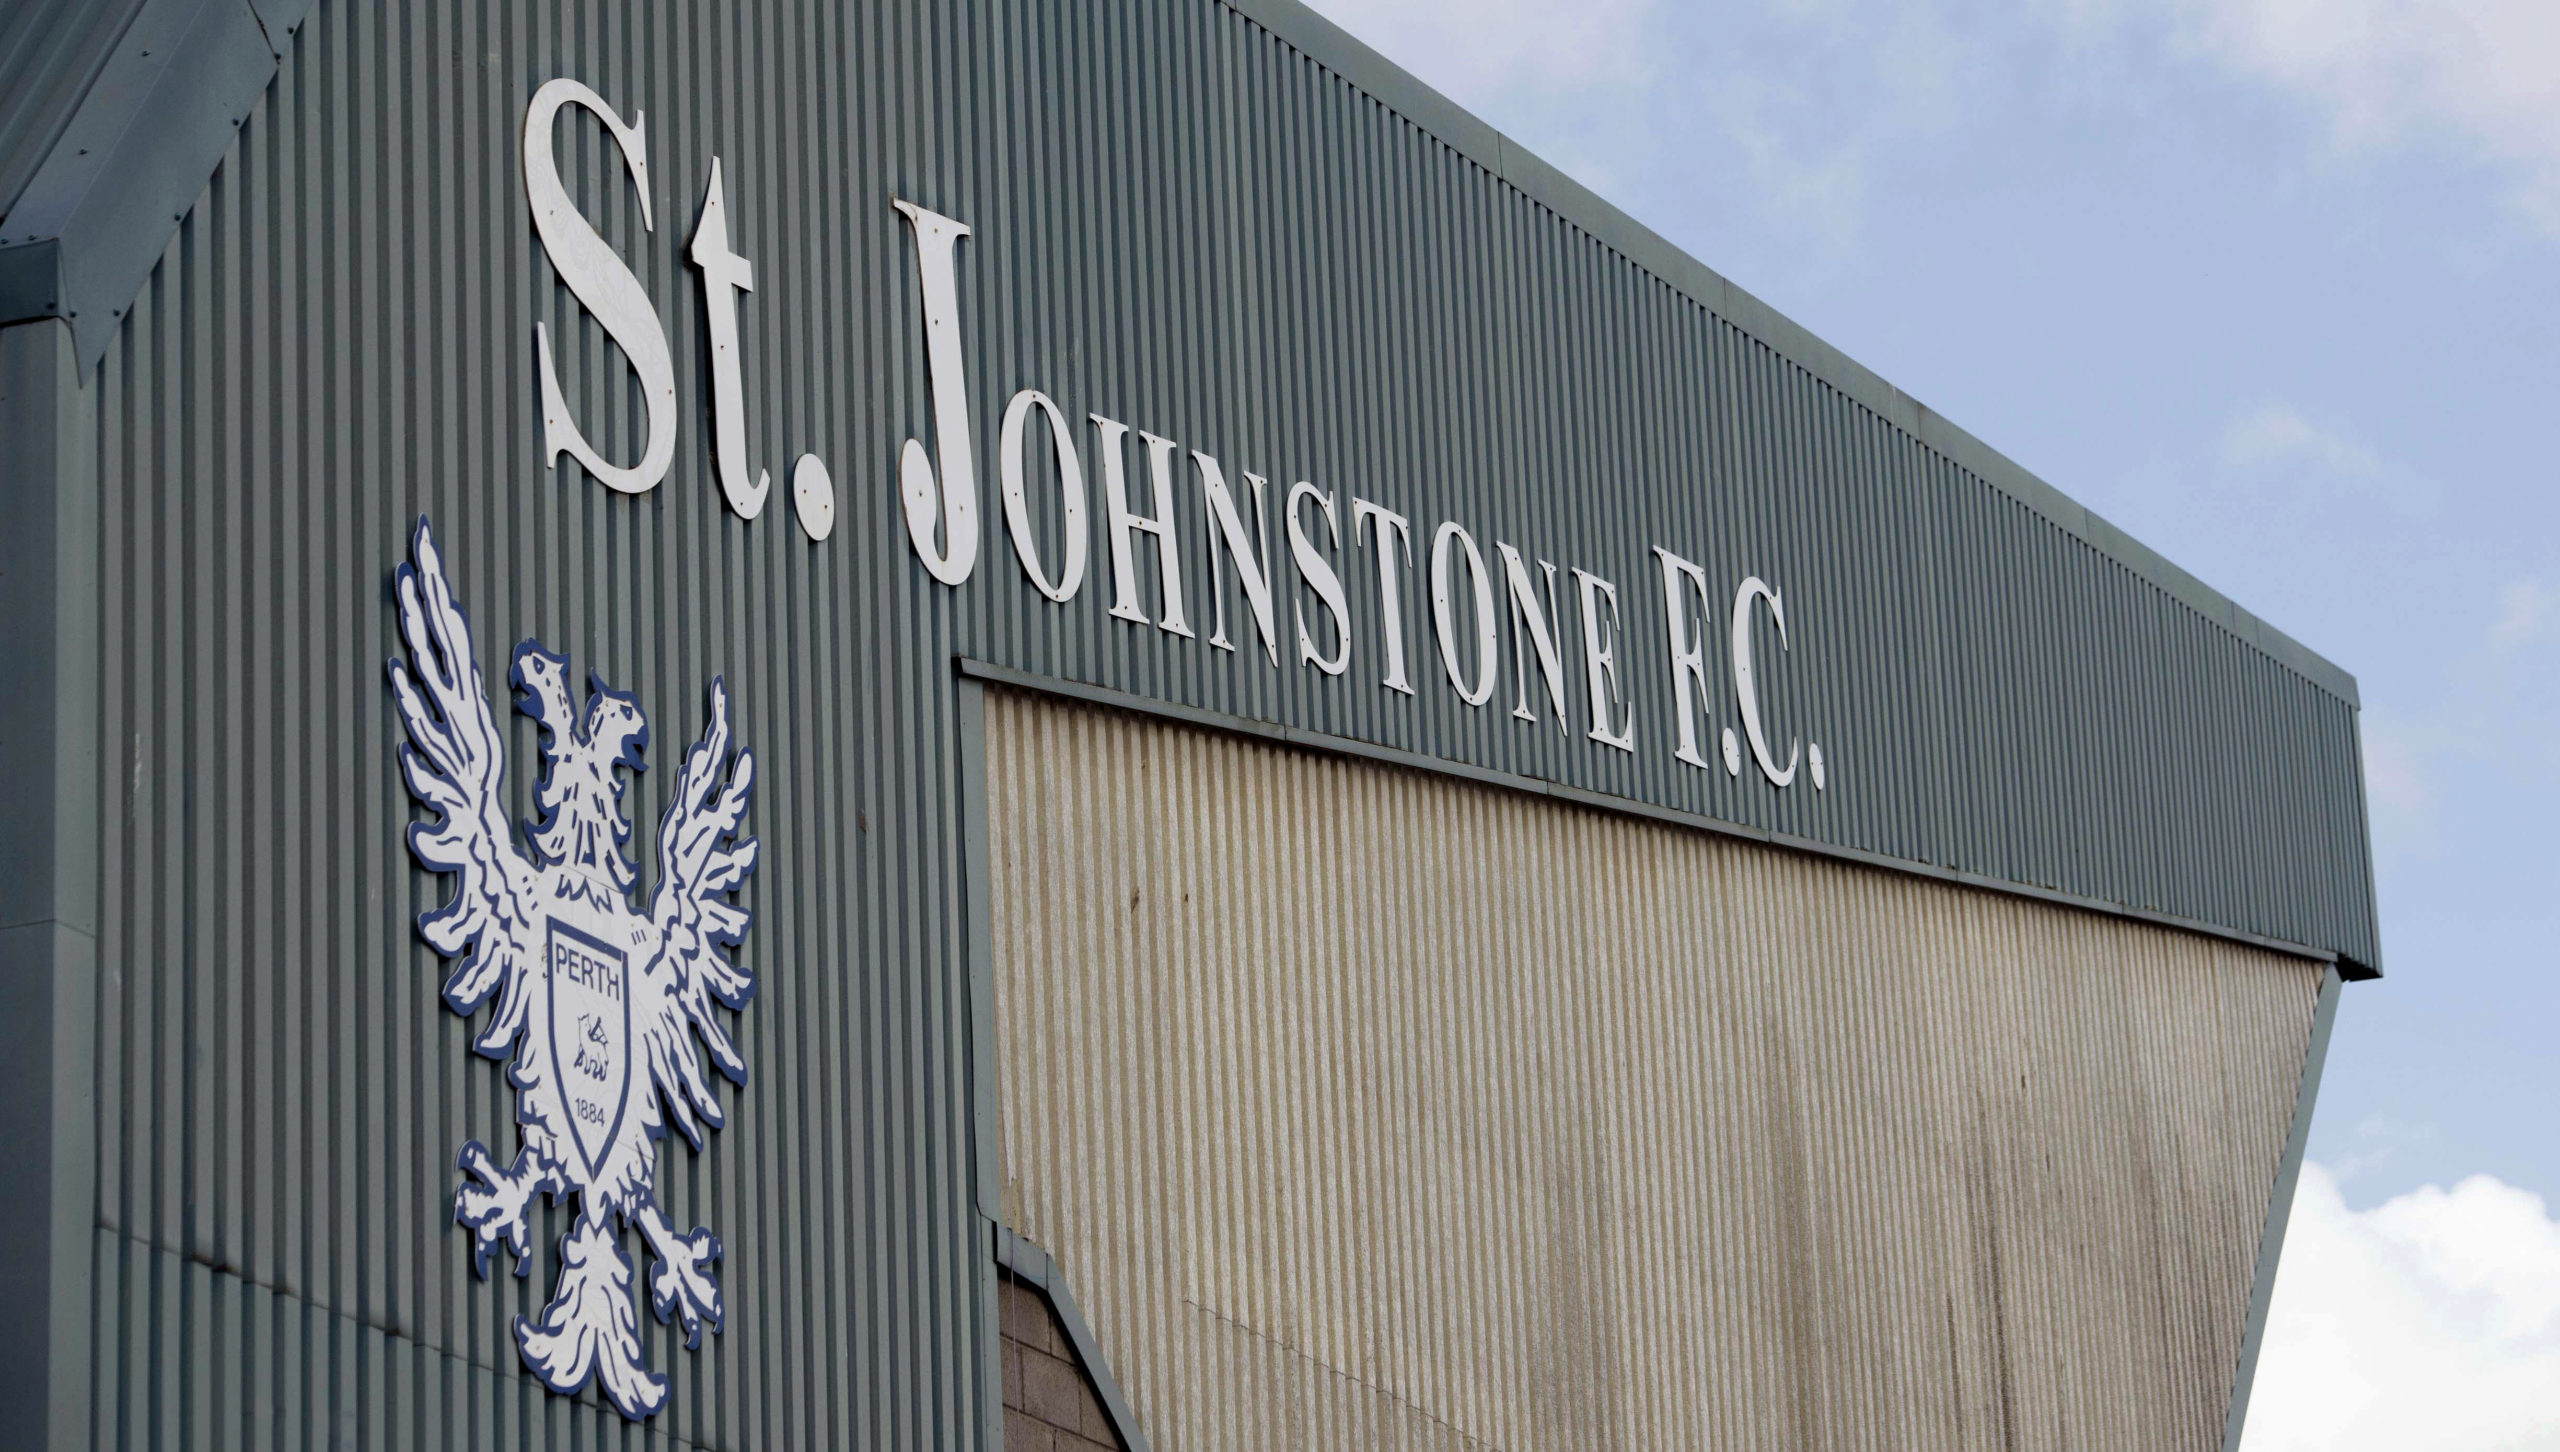 McDiarmid Park club confirmed another player has tested positive.